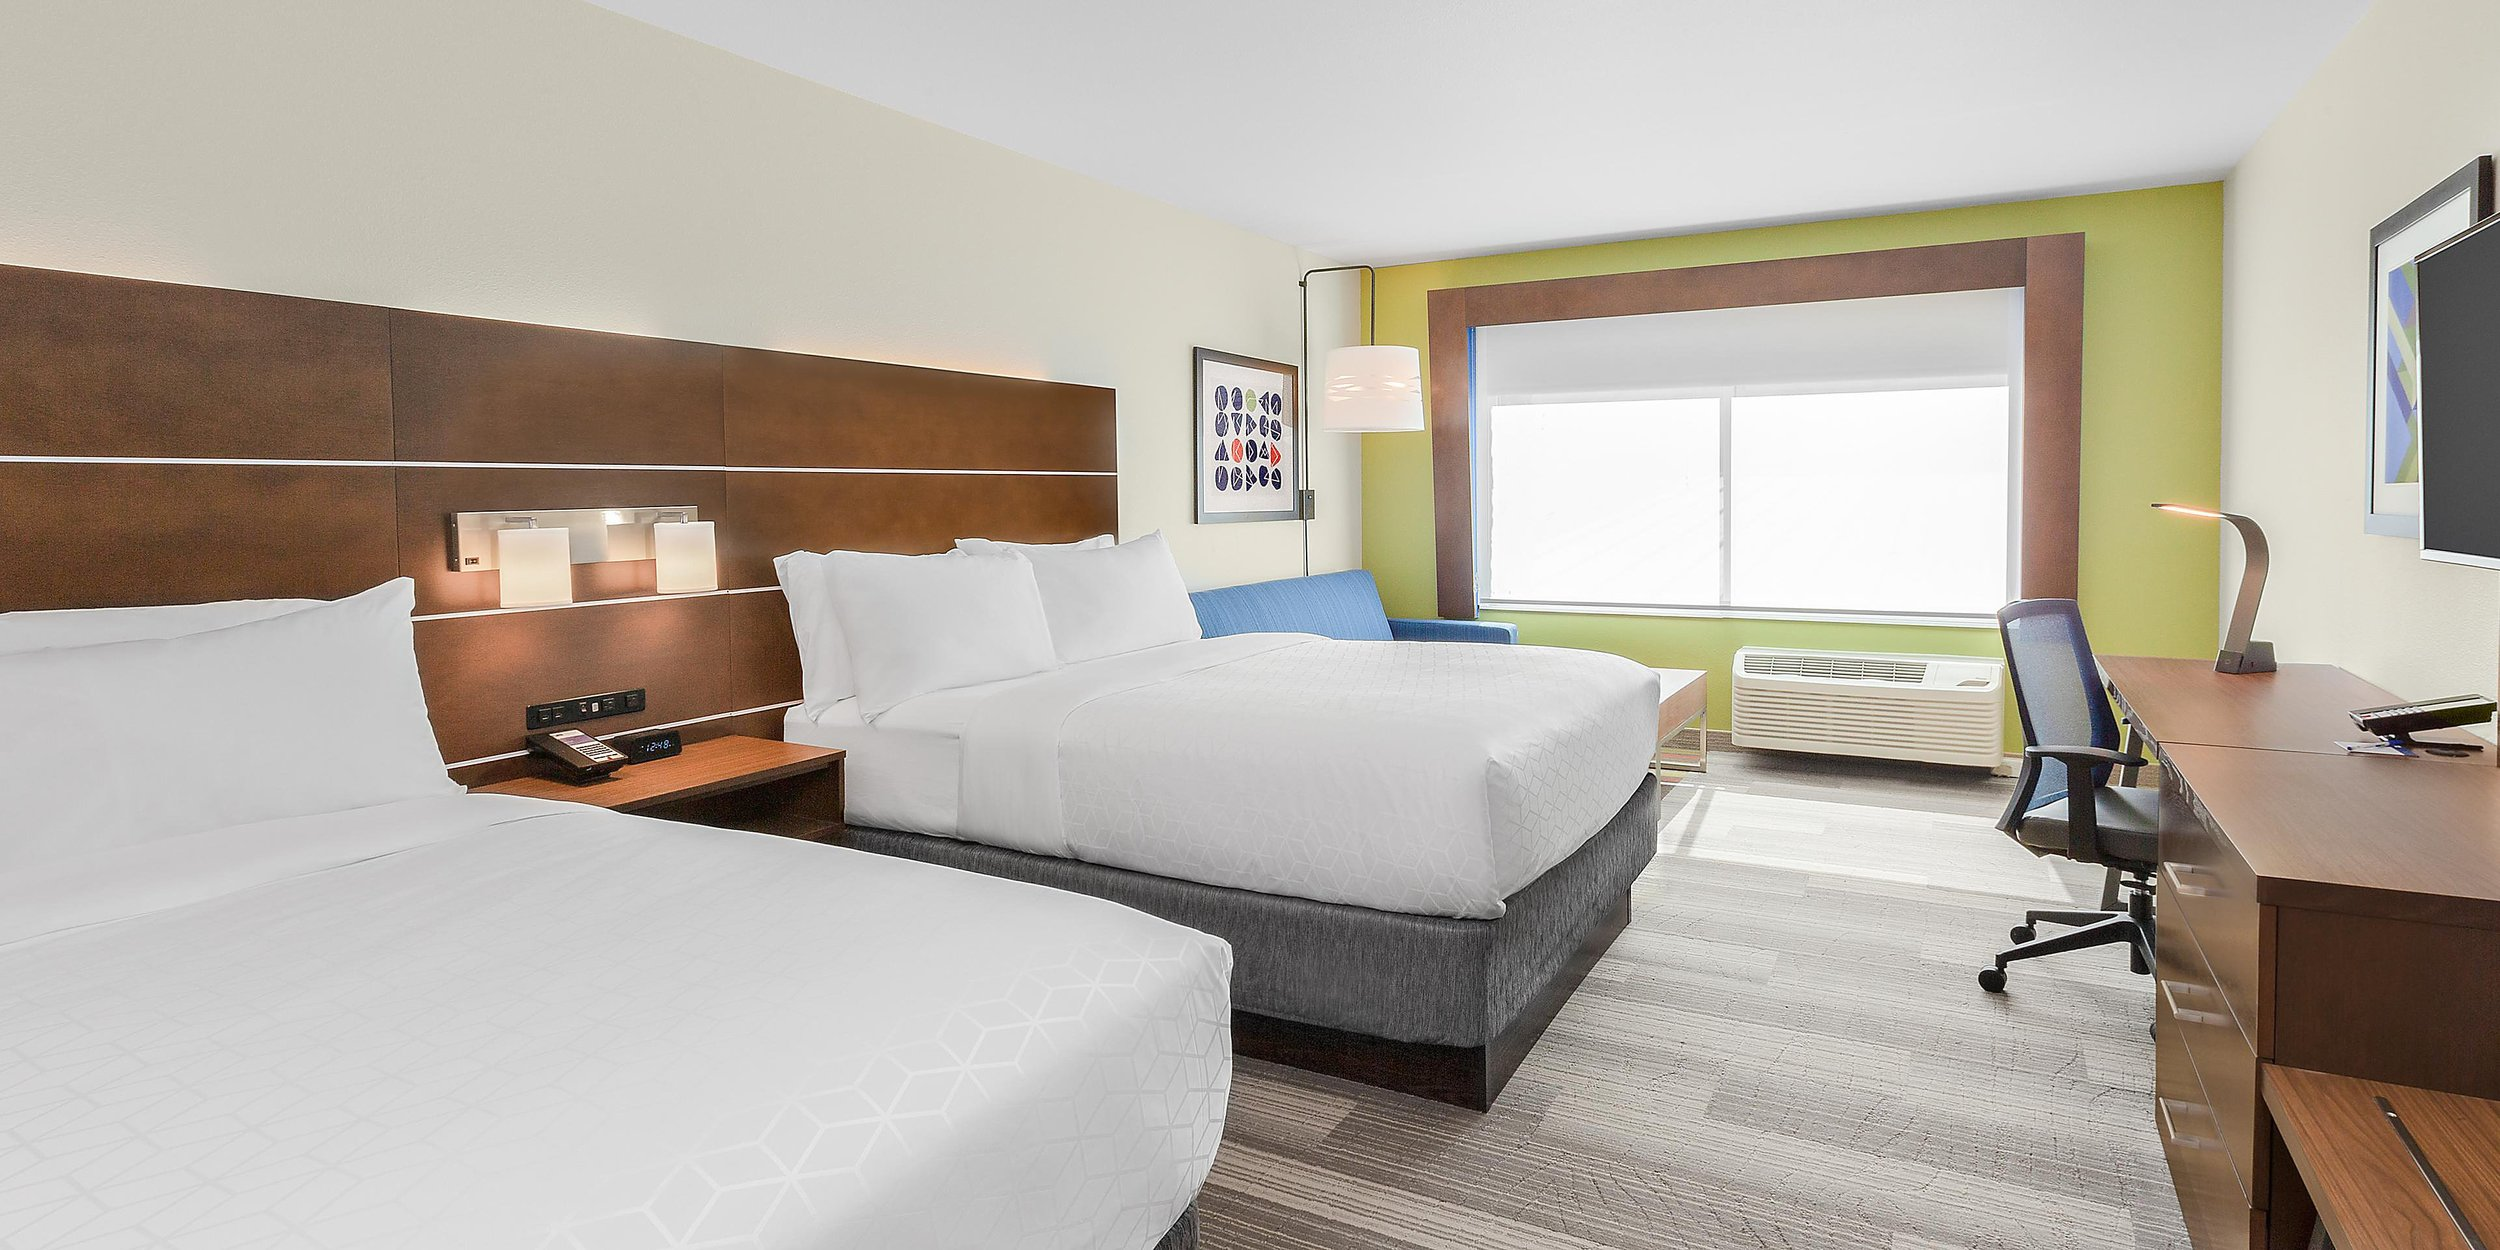 Bedroom in the Holiday Inn Express & Suites in Union Gap, WA